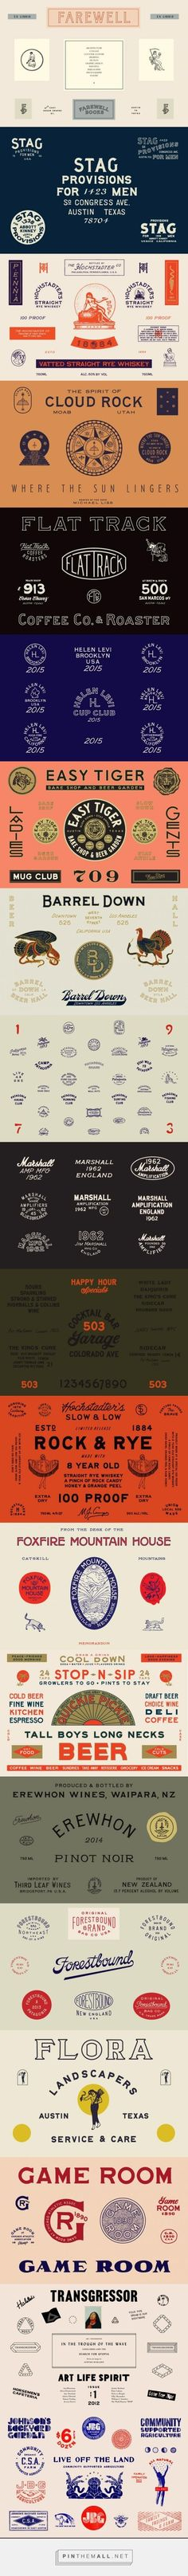 BRAND SPECIMENS http://www.workbyland.com/design - created via…